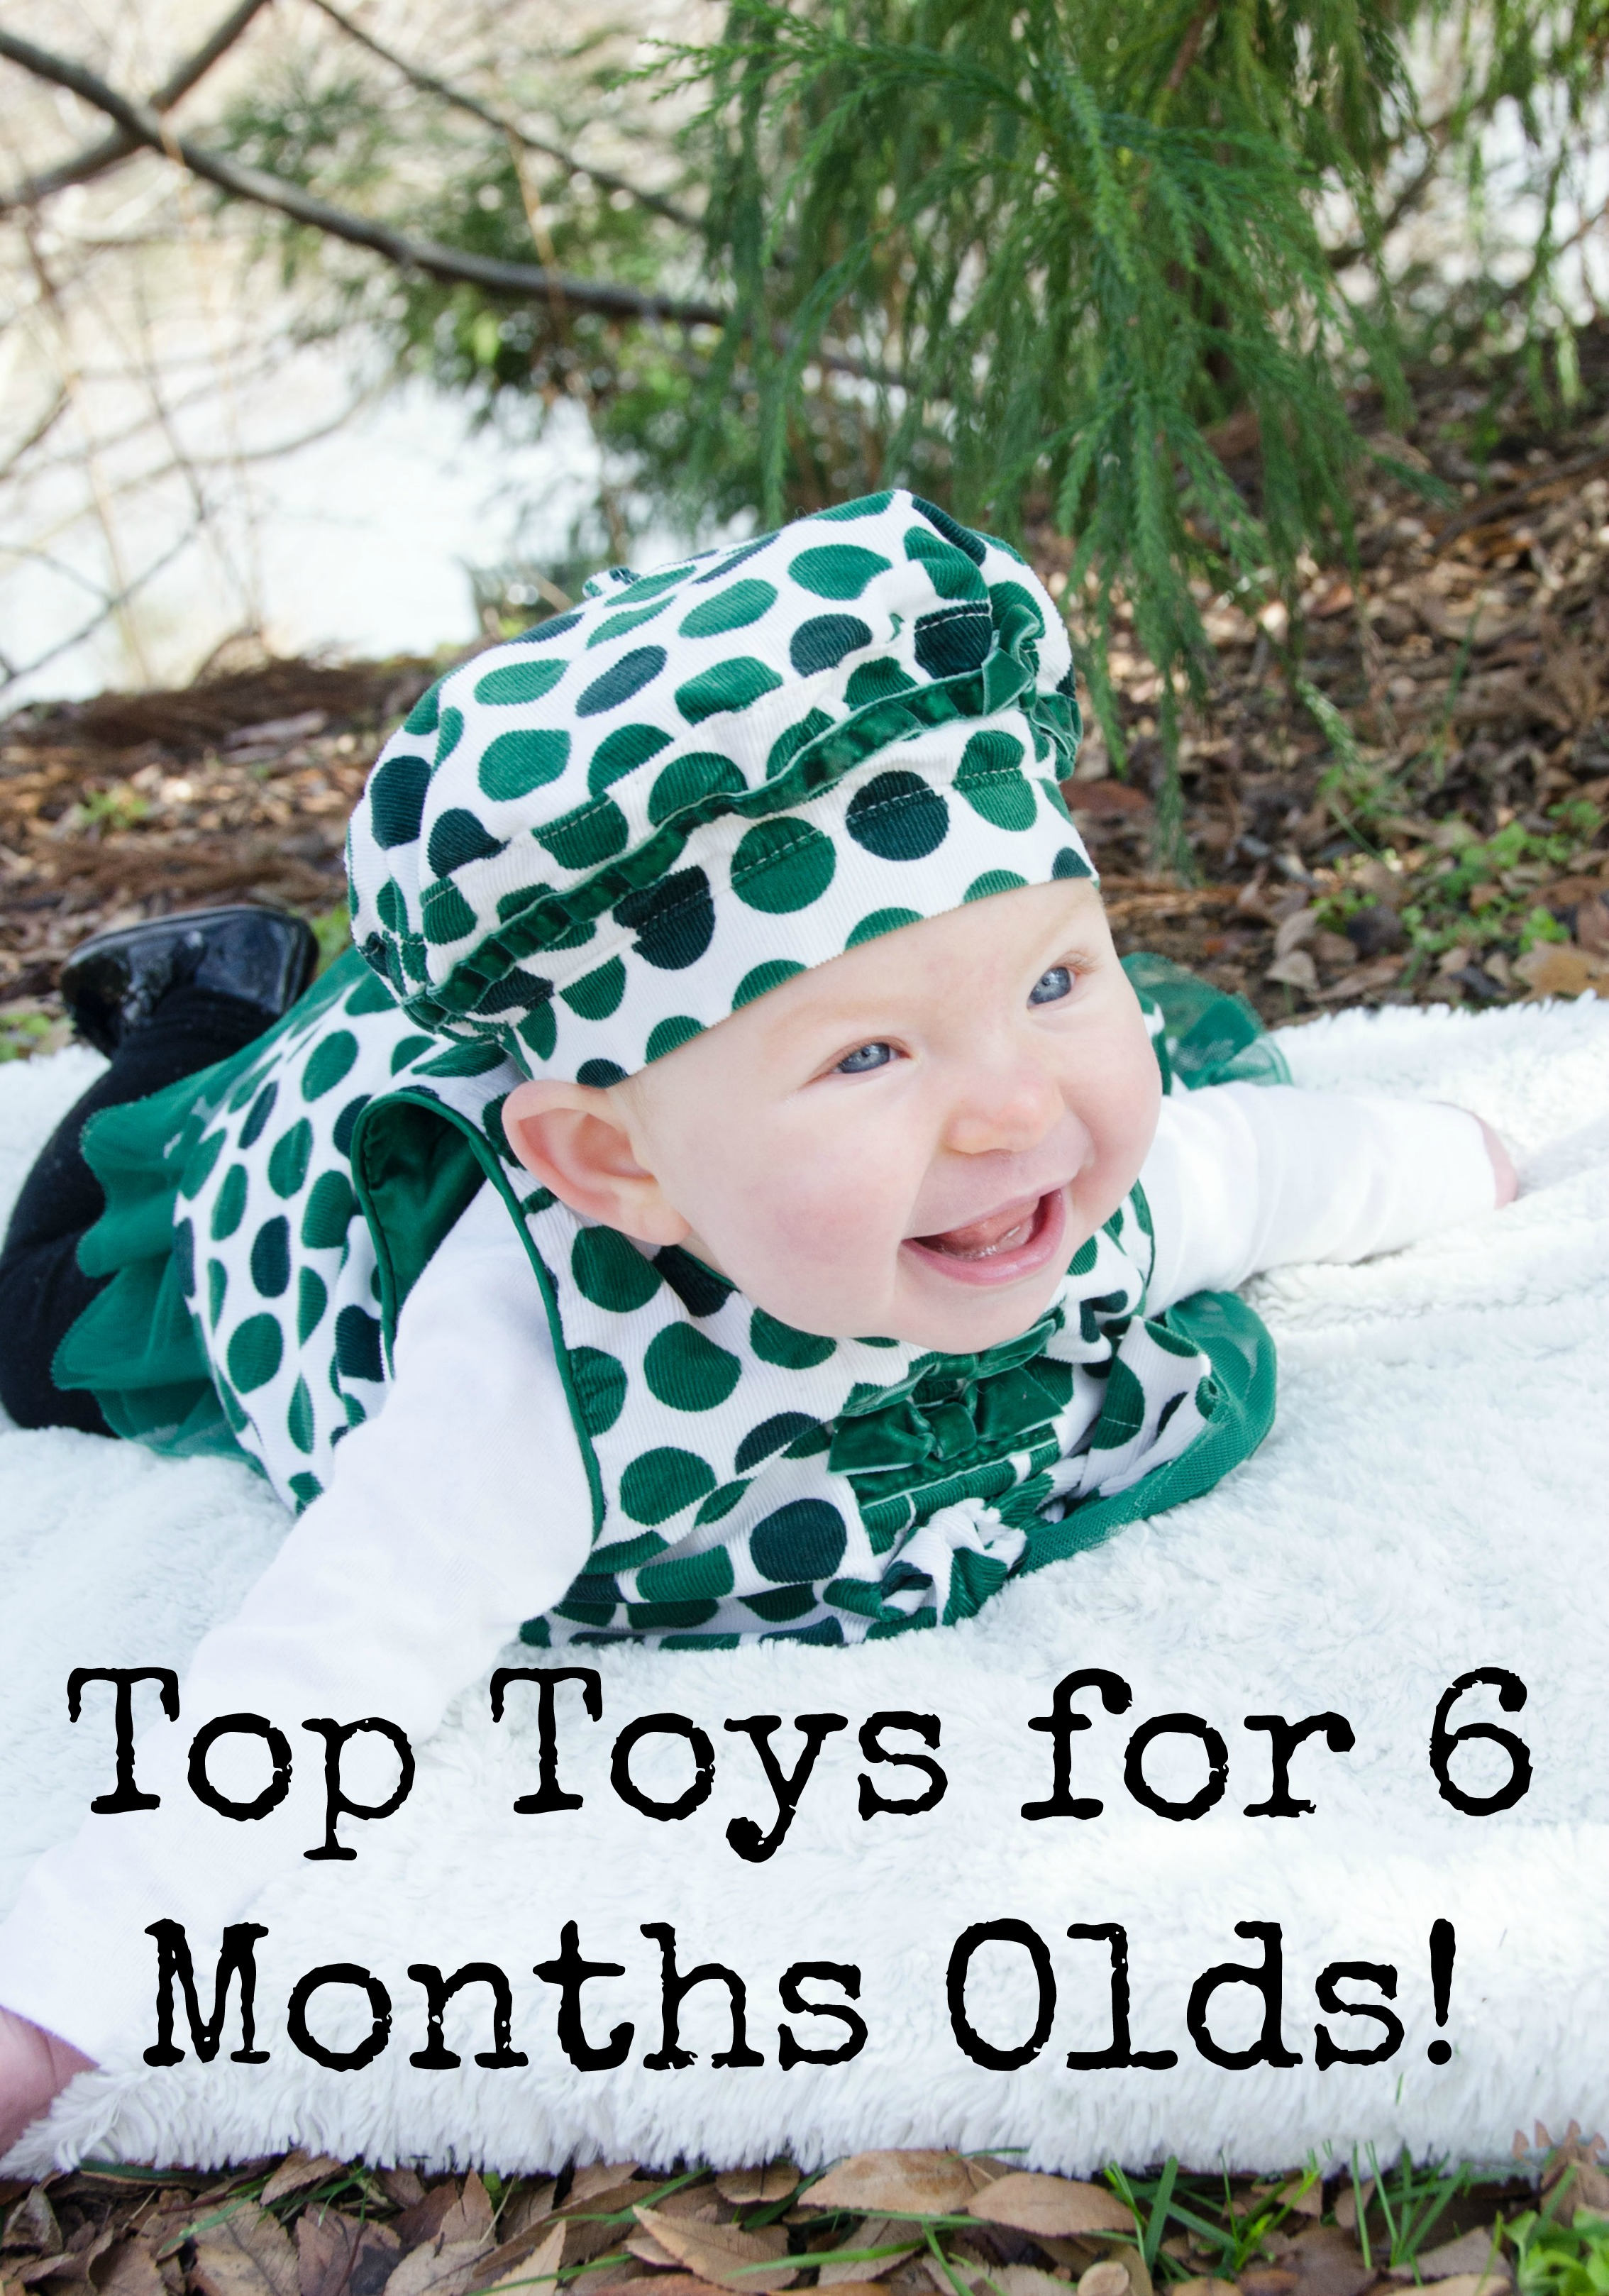 Toys For 6 : Top toys for month olds grassfed mama